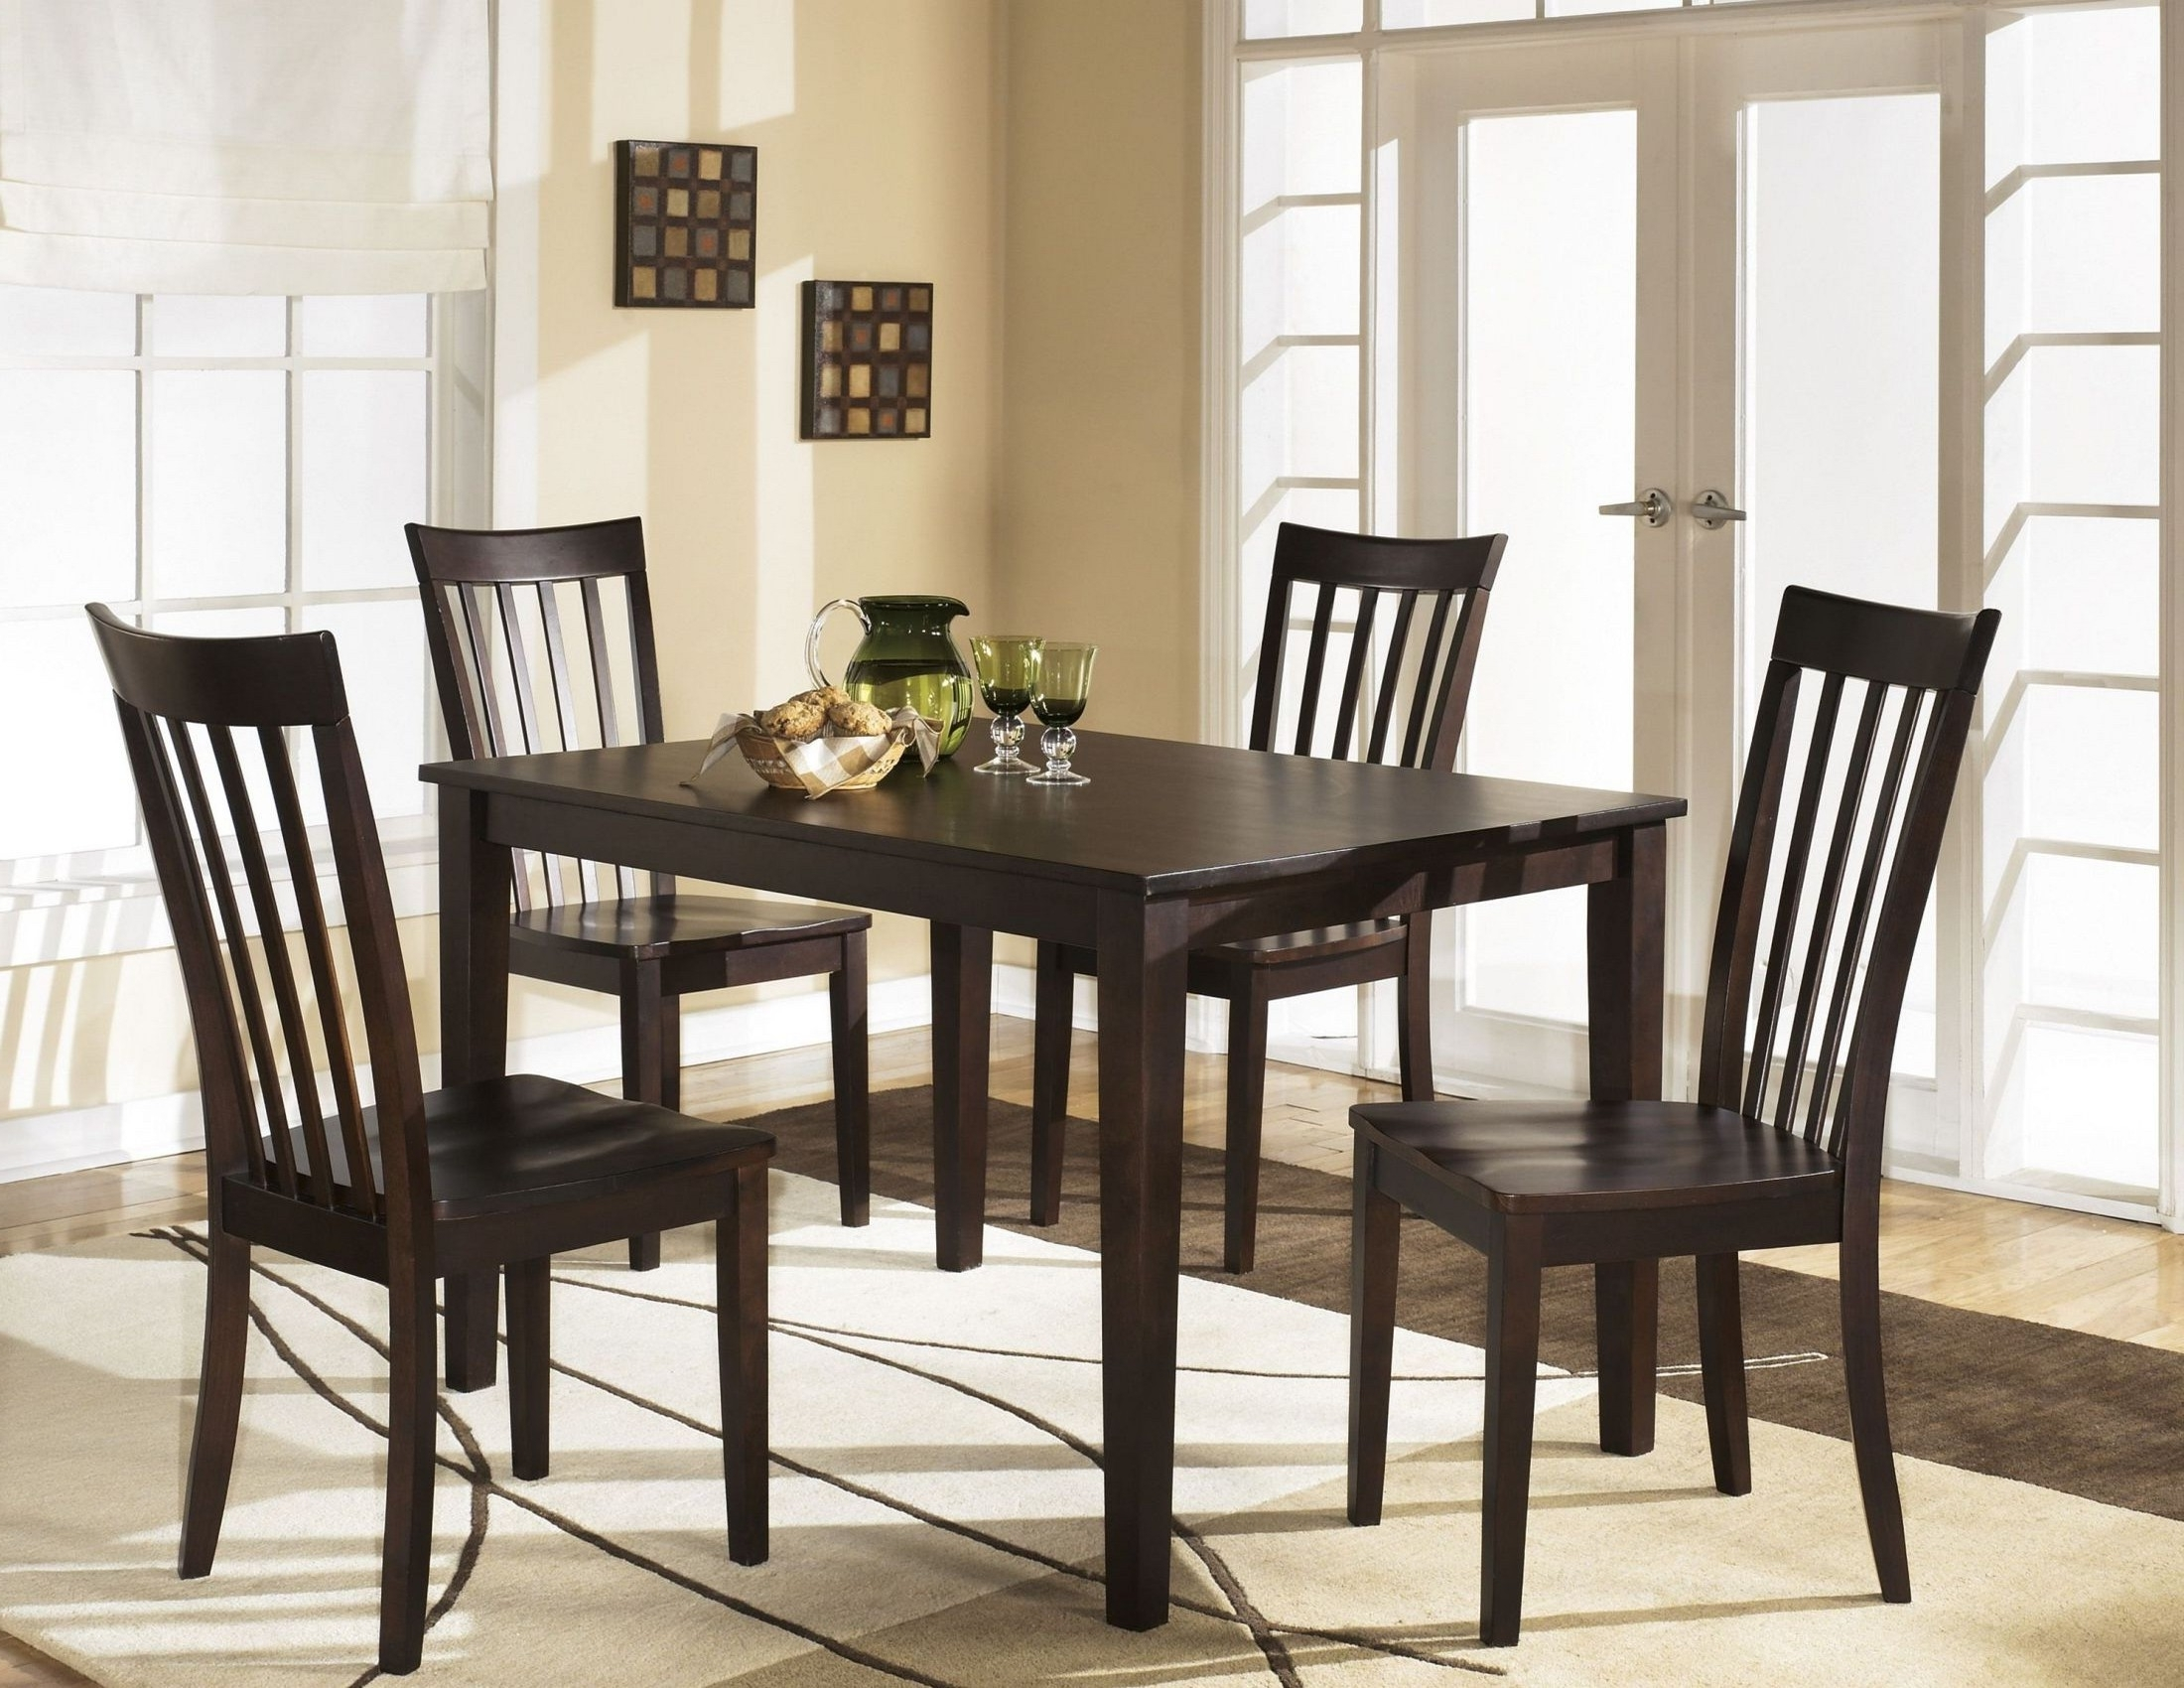 Most Recent Signature Designashley Hyland 5 Piece Casual Dining Set – Hyland With Hyland 5 Piece Counter Sets With Bench (View 4 of 25)